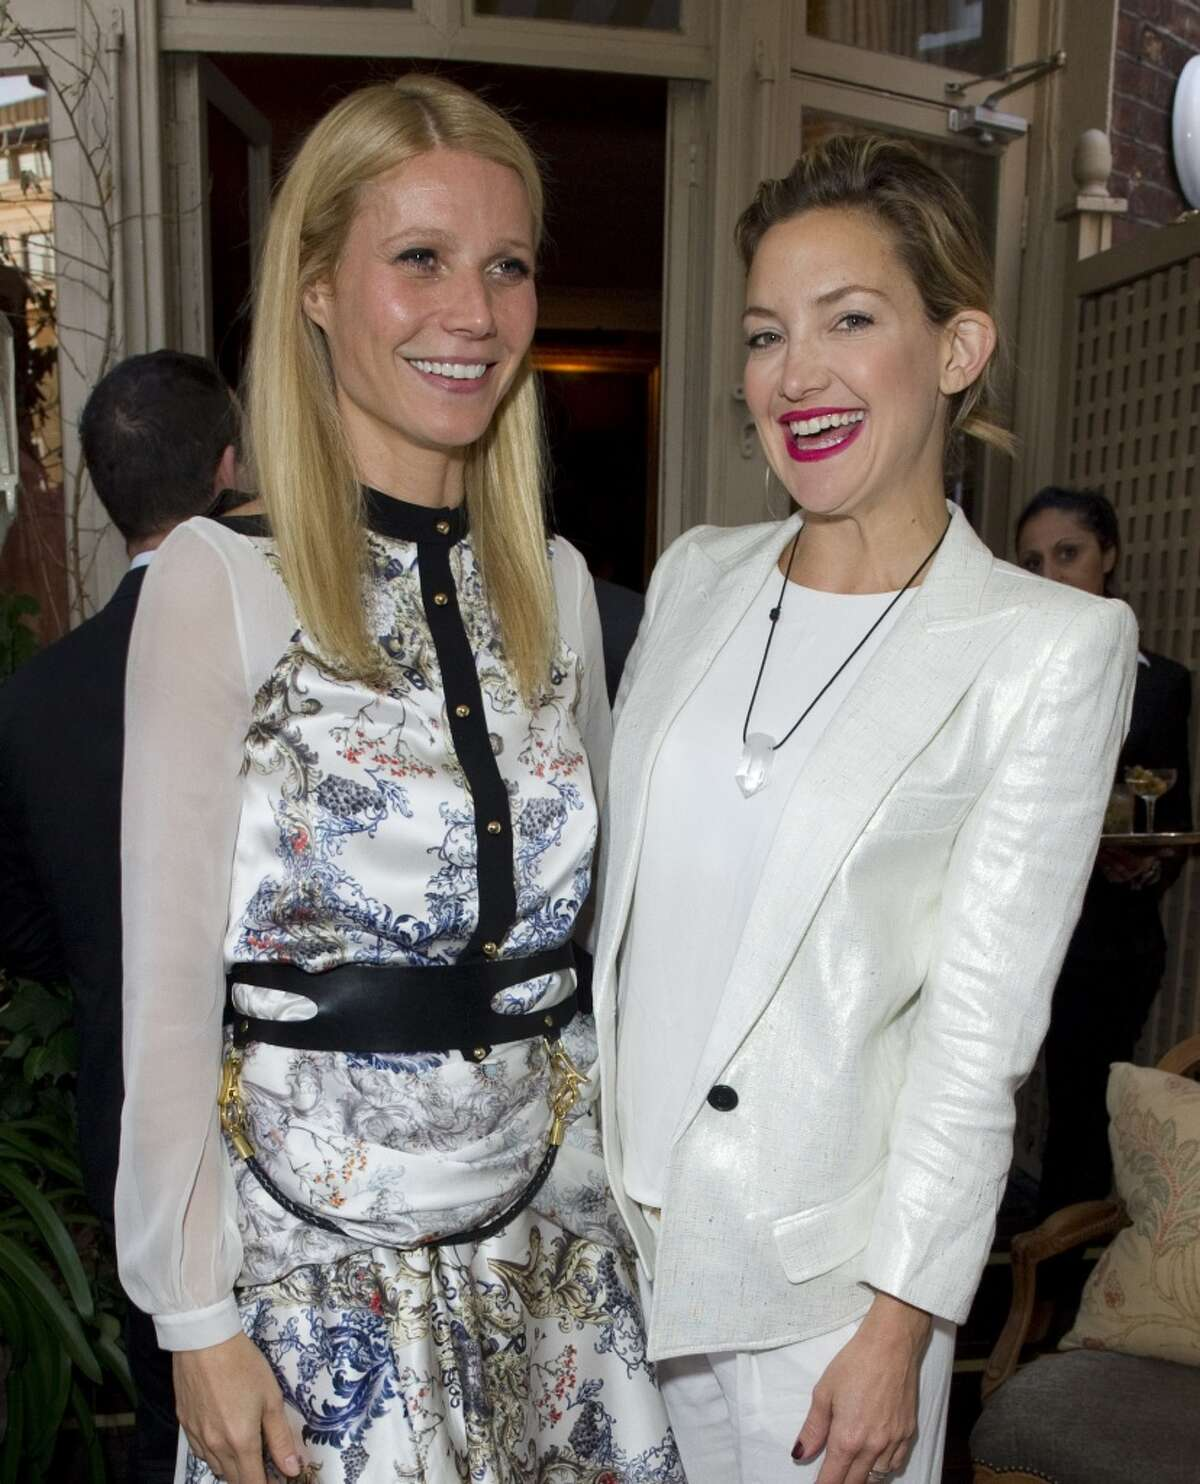 LONDON - MAY 21: Gwyneth Paltrow and Kate Hudson pose at Goop's party to launch the summer season, at Mark's Club on May 21, 2013 in London, England. (Photo by David M. Benett/Getty Images)